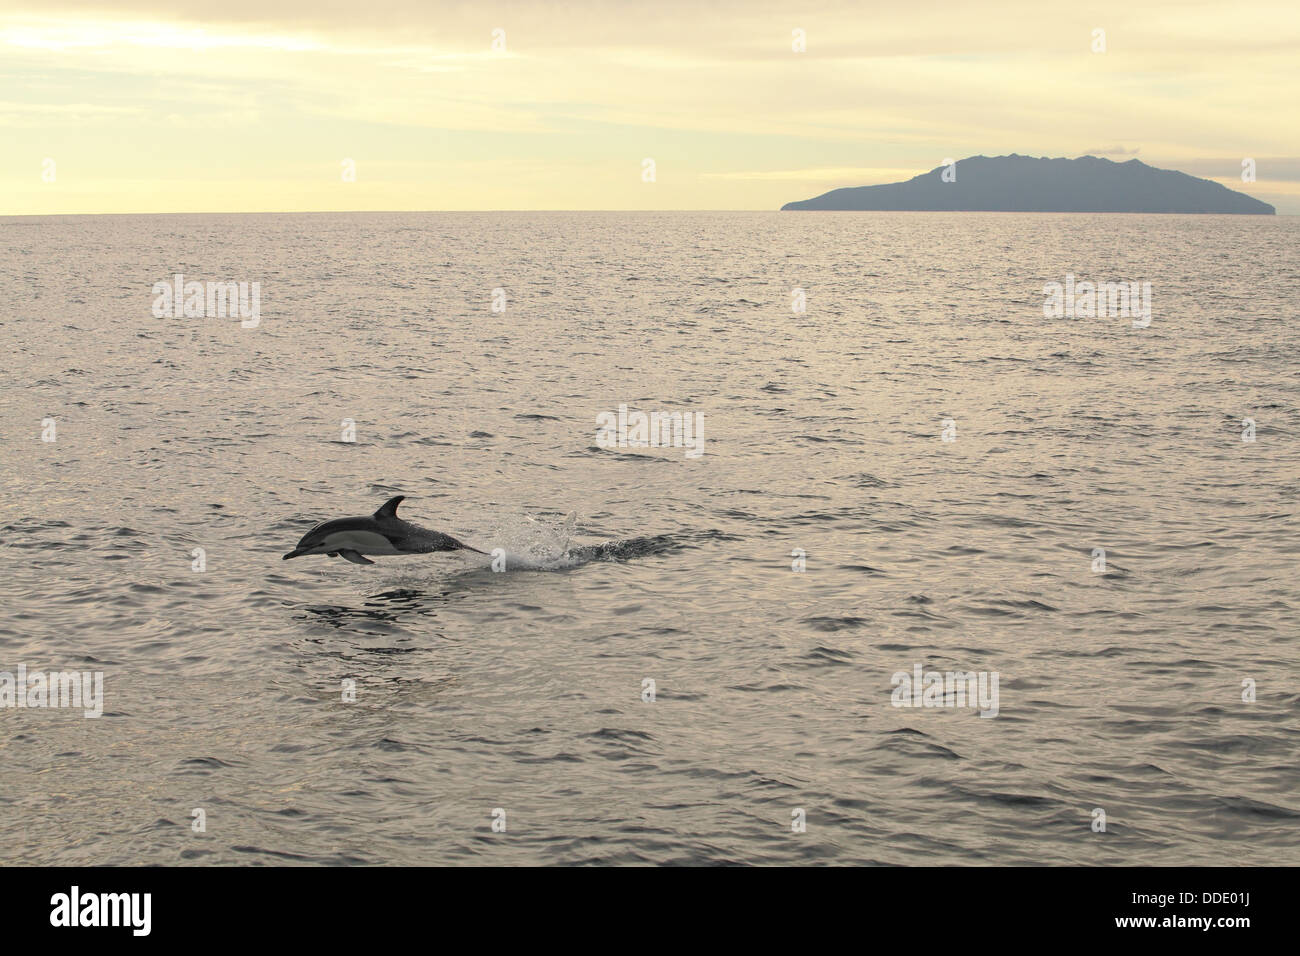 Dolphin at sunset in the Hauraki gulf of Auckland, New Zealand - Stock Image